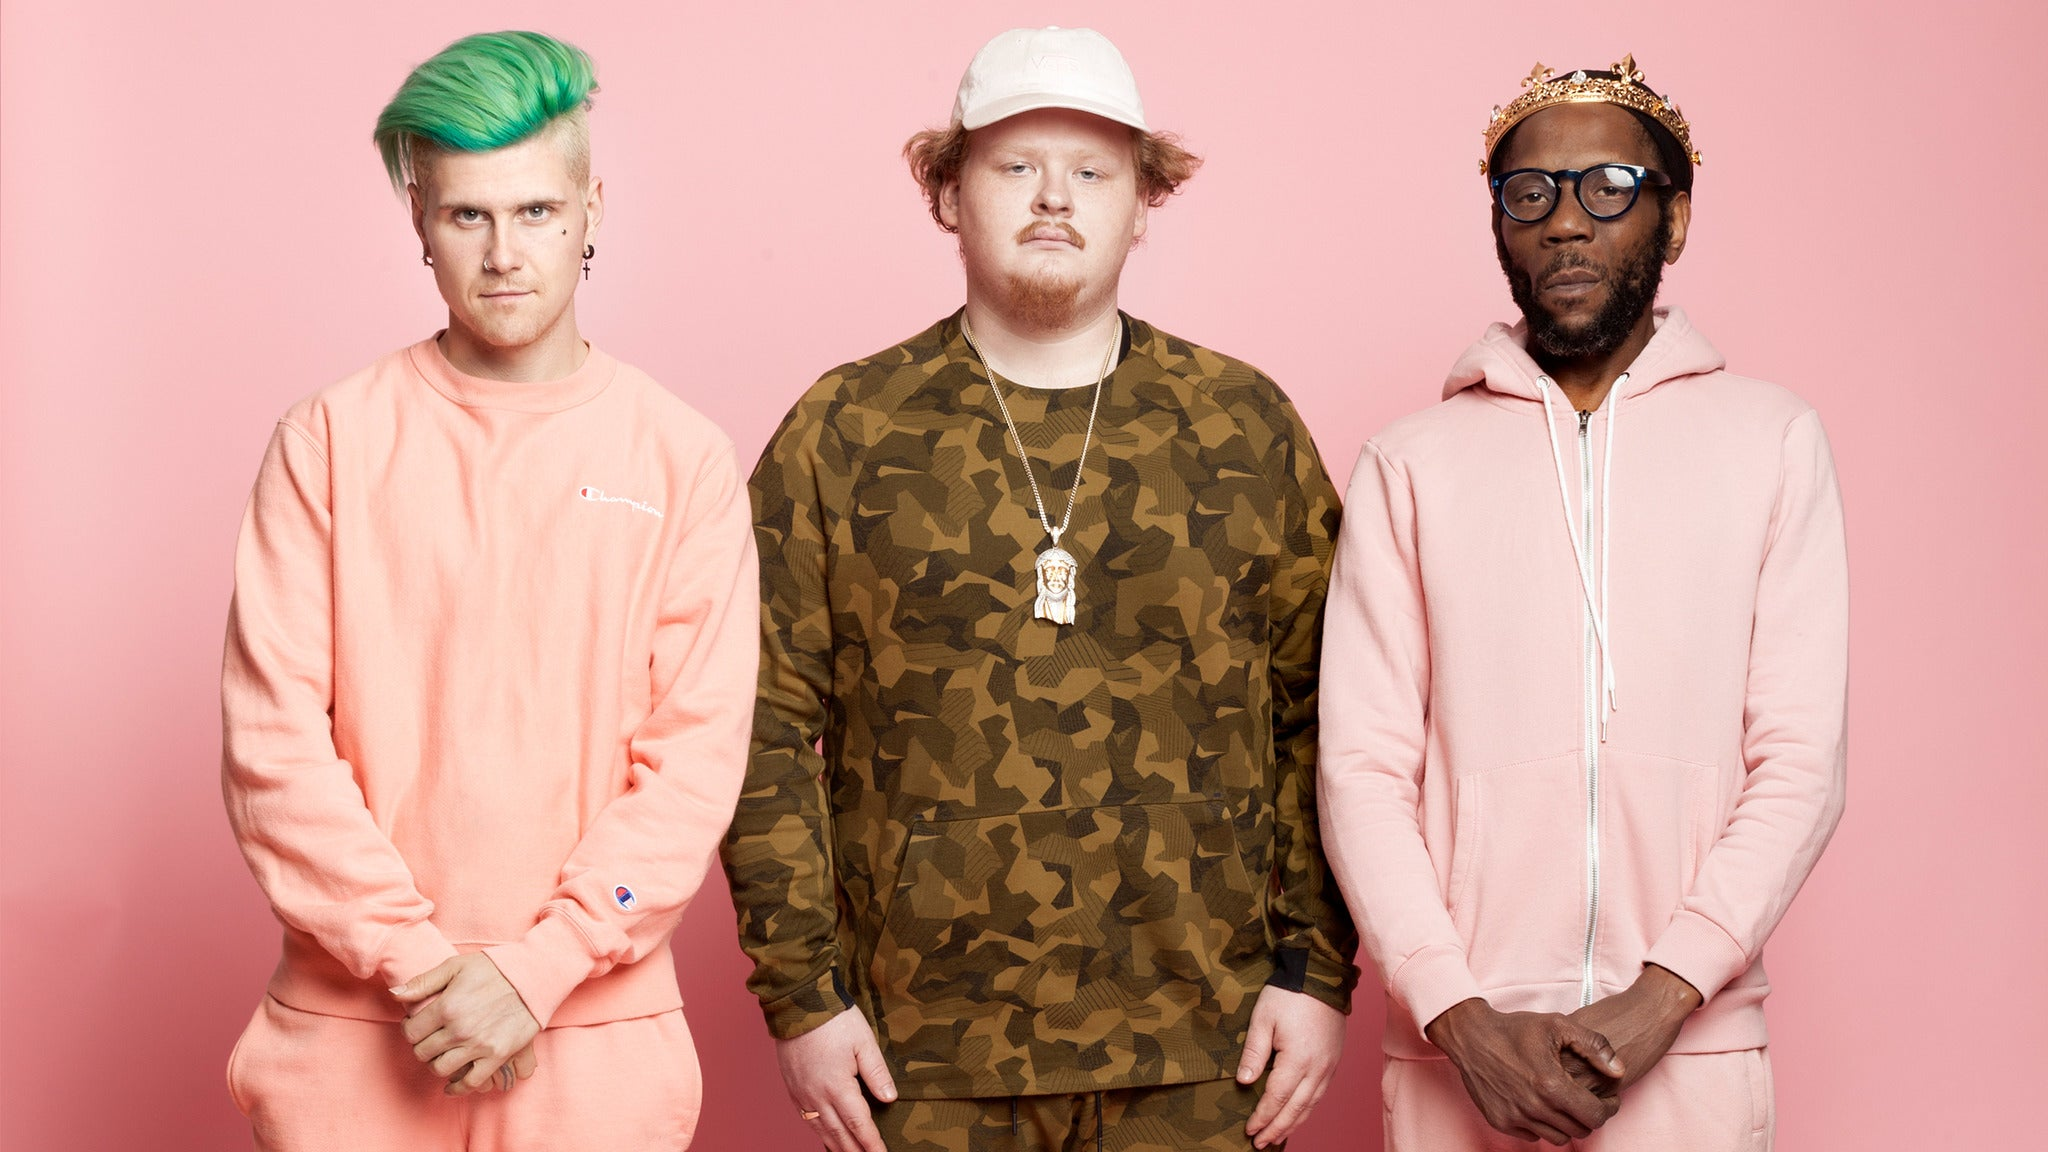 Too Many Zooz x Big Freedia presale password for early tickets in Denver